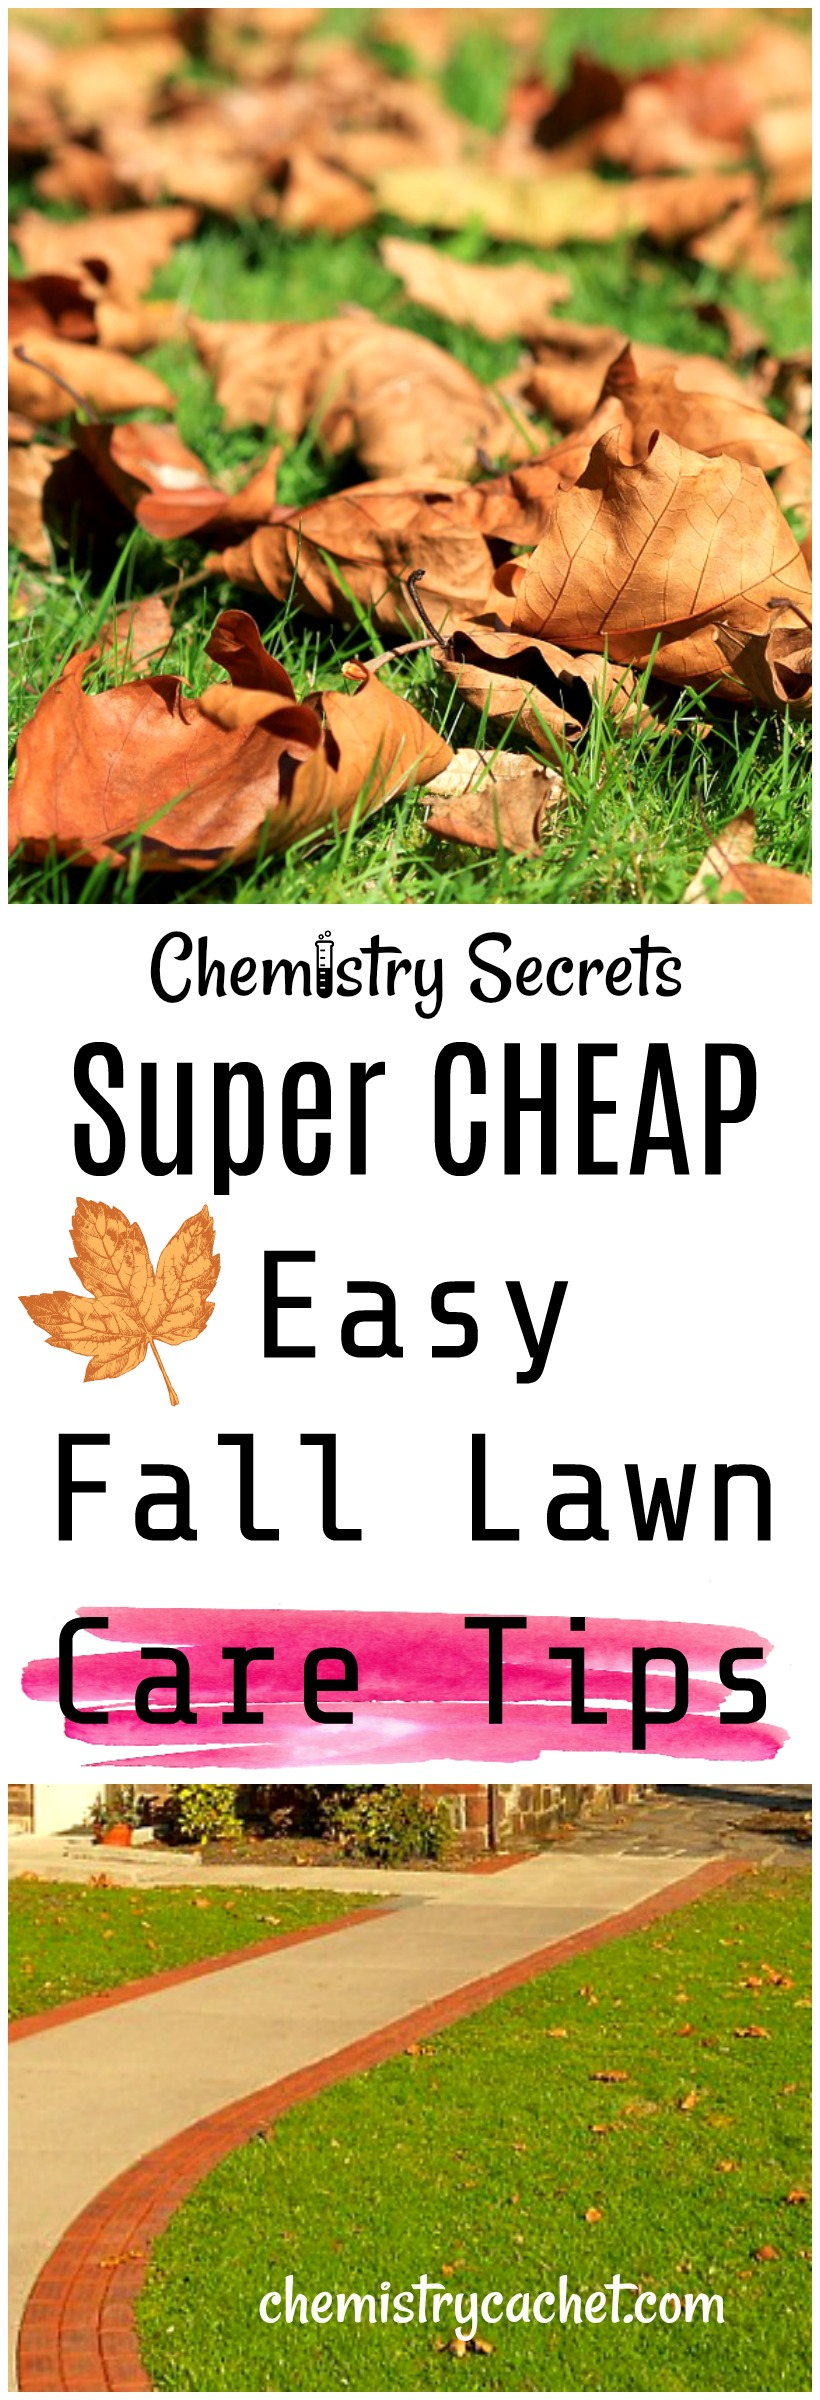 Want to know the secrets to a beautiful spring lawn Follow these easy fall lawn care tips now! So cheap too! on chemistrycachet.com